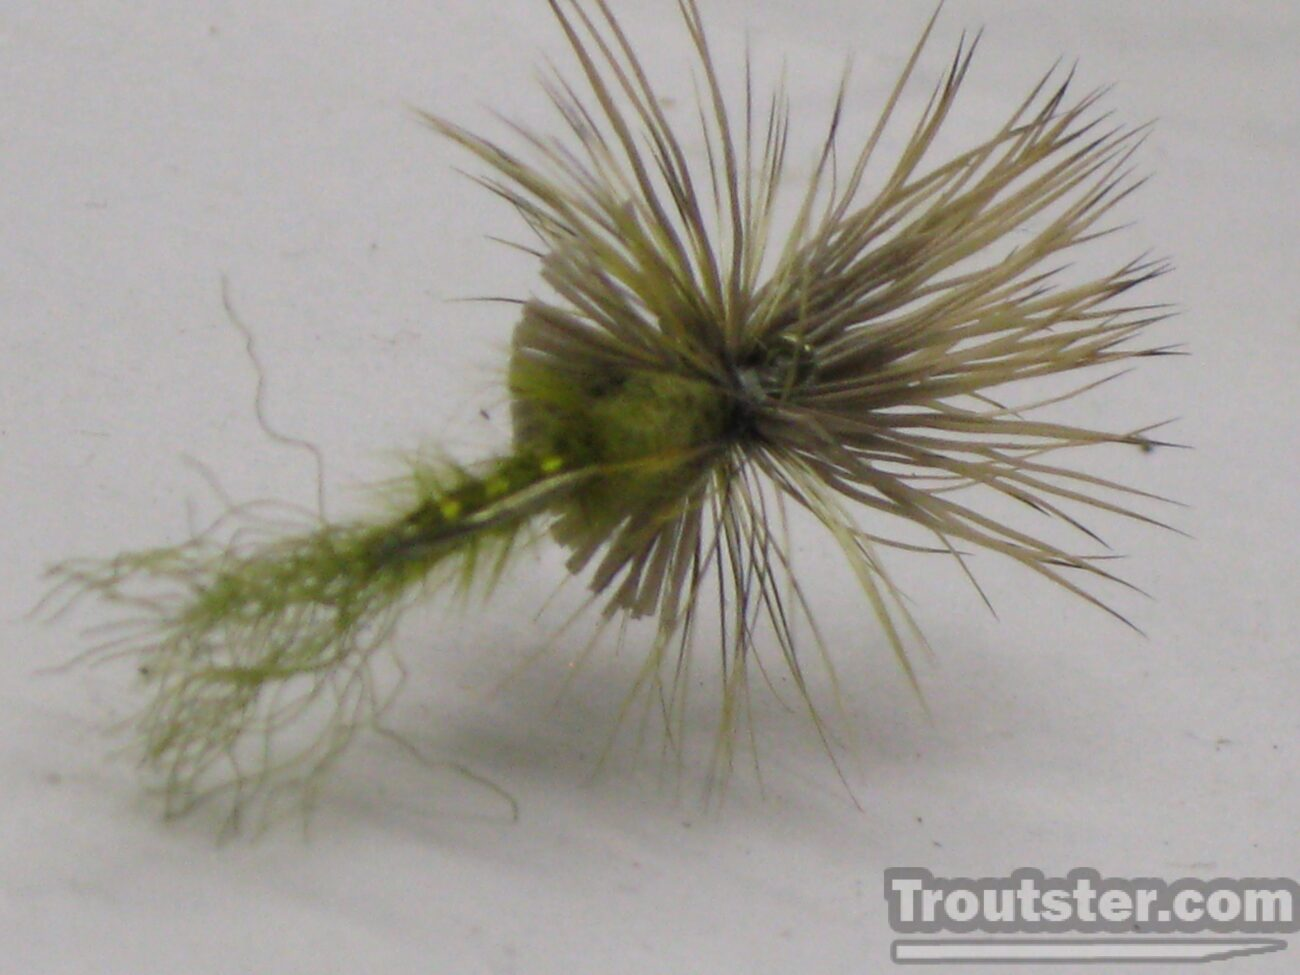 Green drake cripple pattern image the the bottom of fly